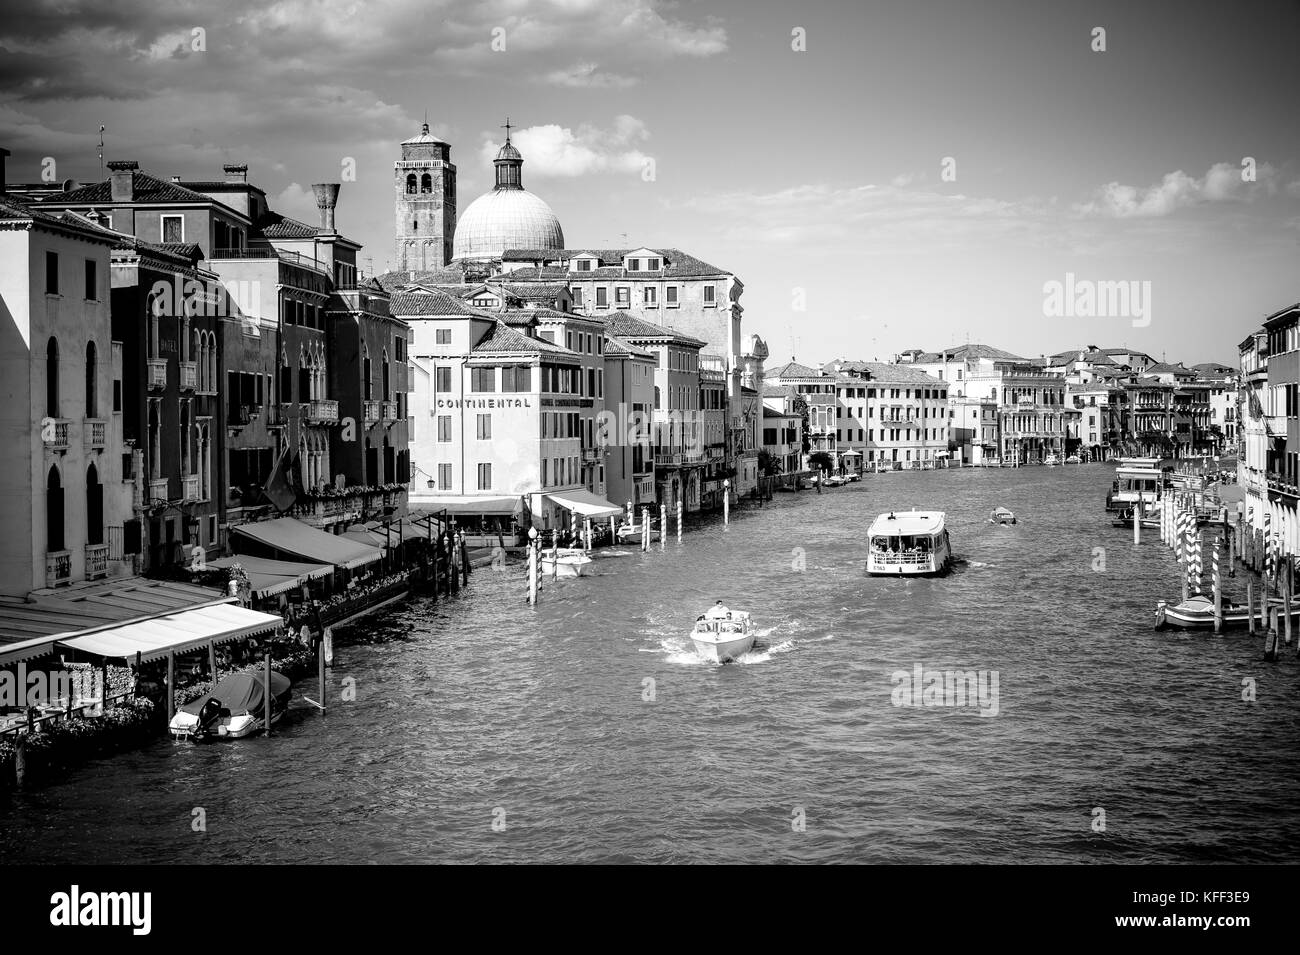 A vaporetto and private boat on the Grand Canal in Venice, Italy - Stock Image